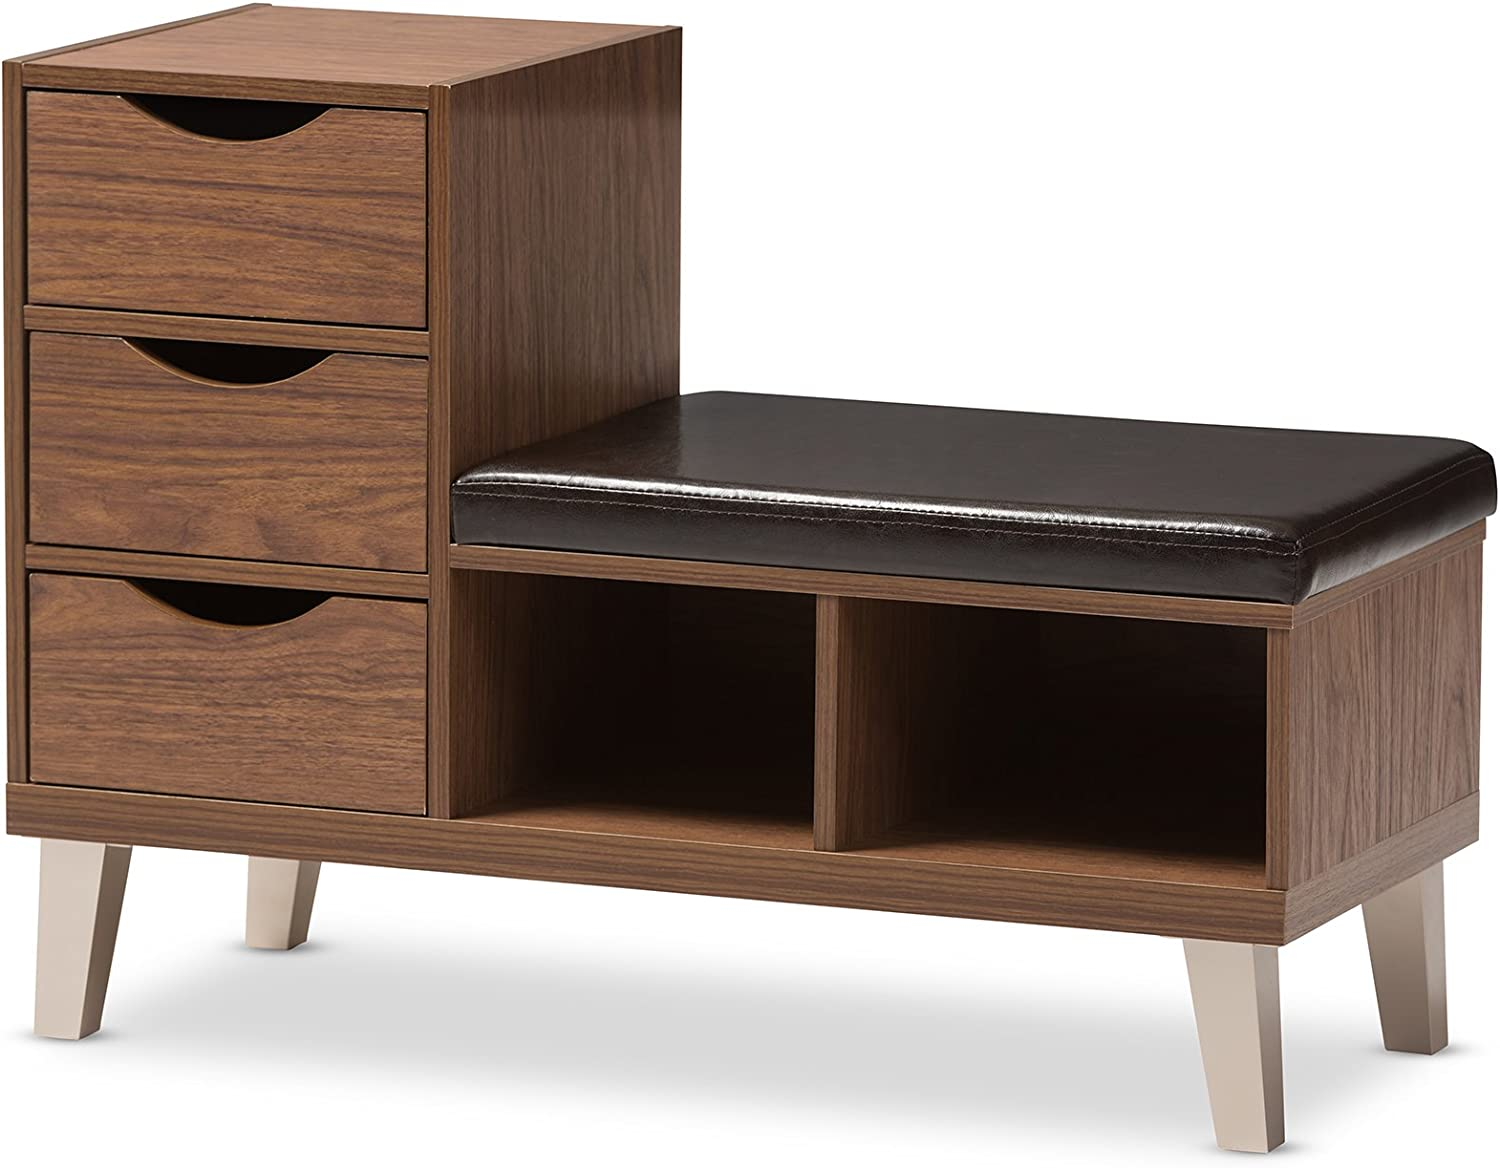 Baxton Studio Jaime Walnut Wood 3-Drawer shoes Storage Padded Leatherette Seating Bench with Two Open Shelves